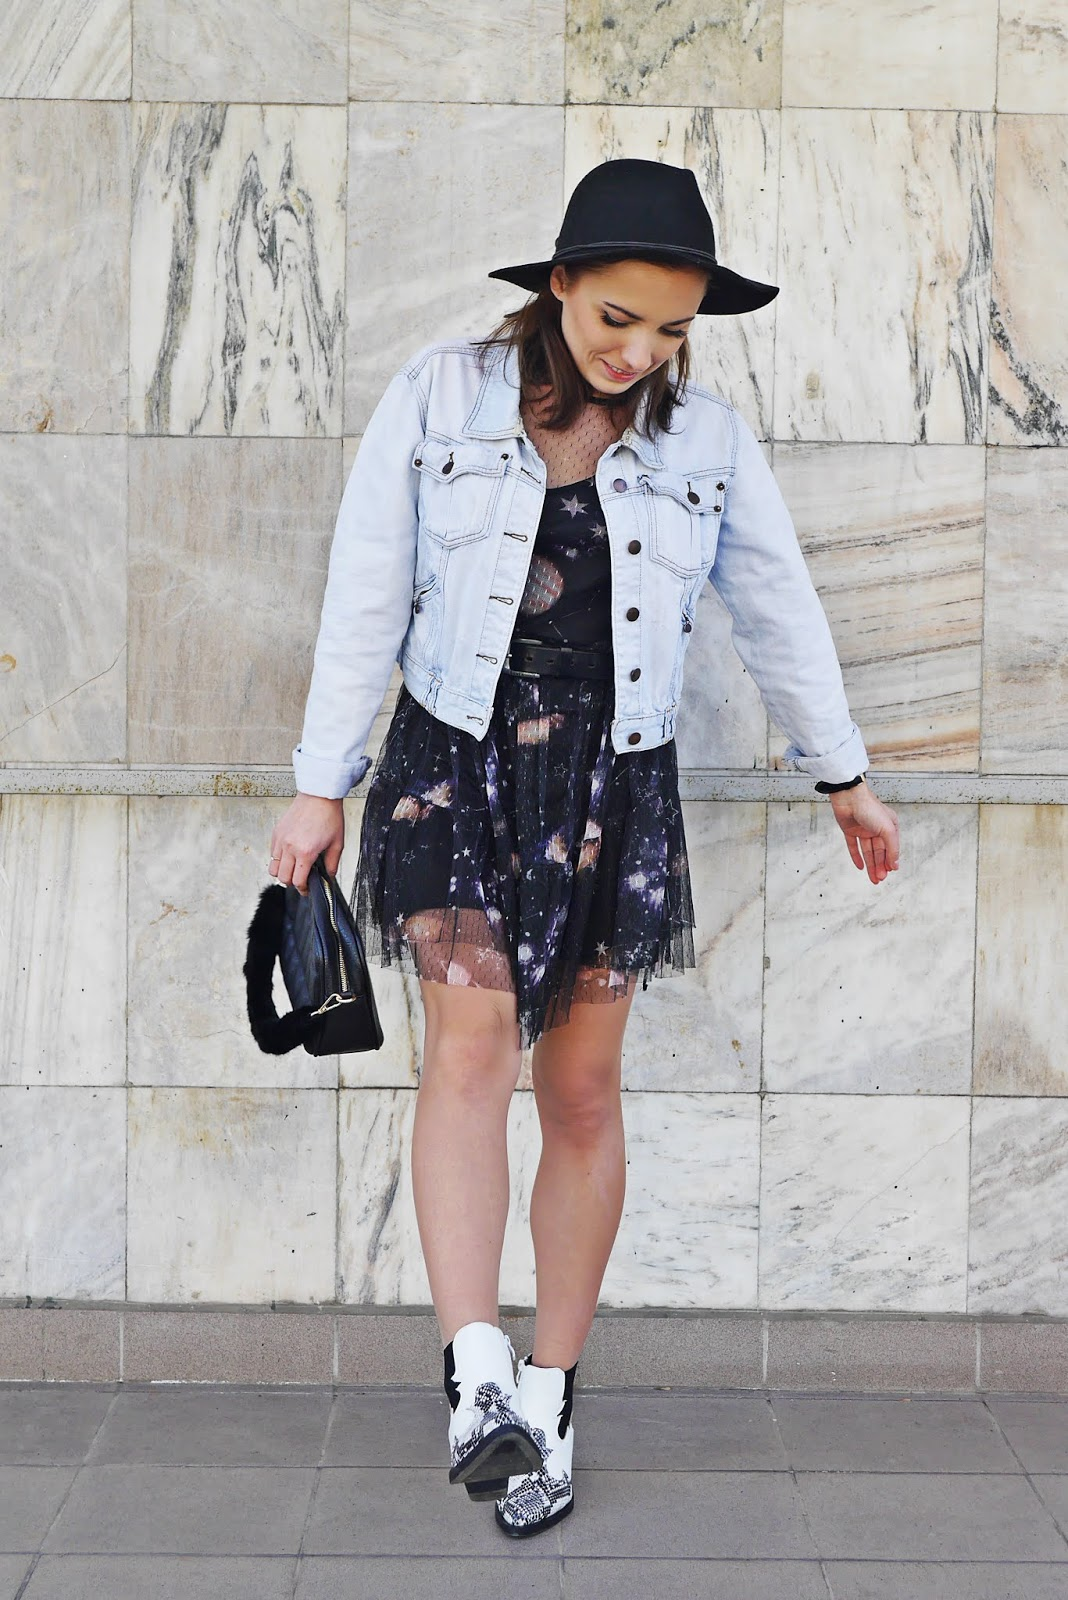 Cowboy shoes mesh dress denim jacket karyn blog modowy